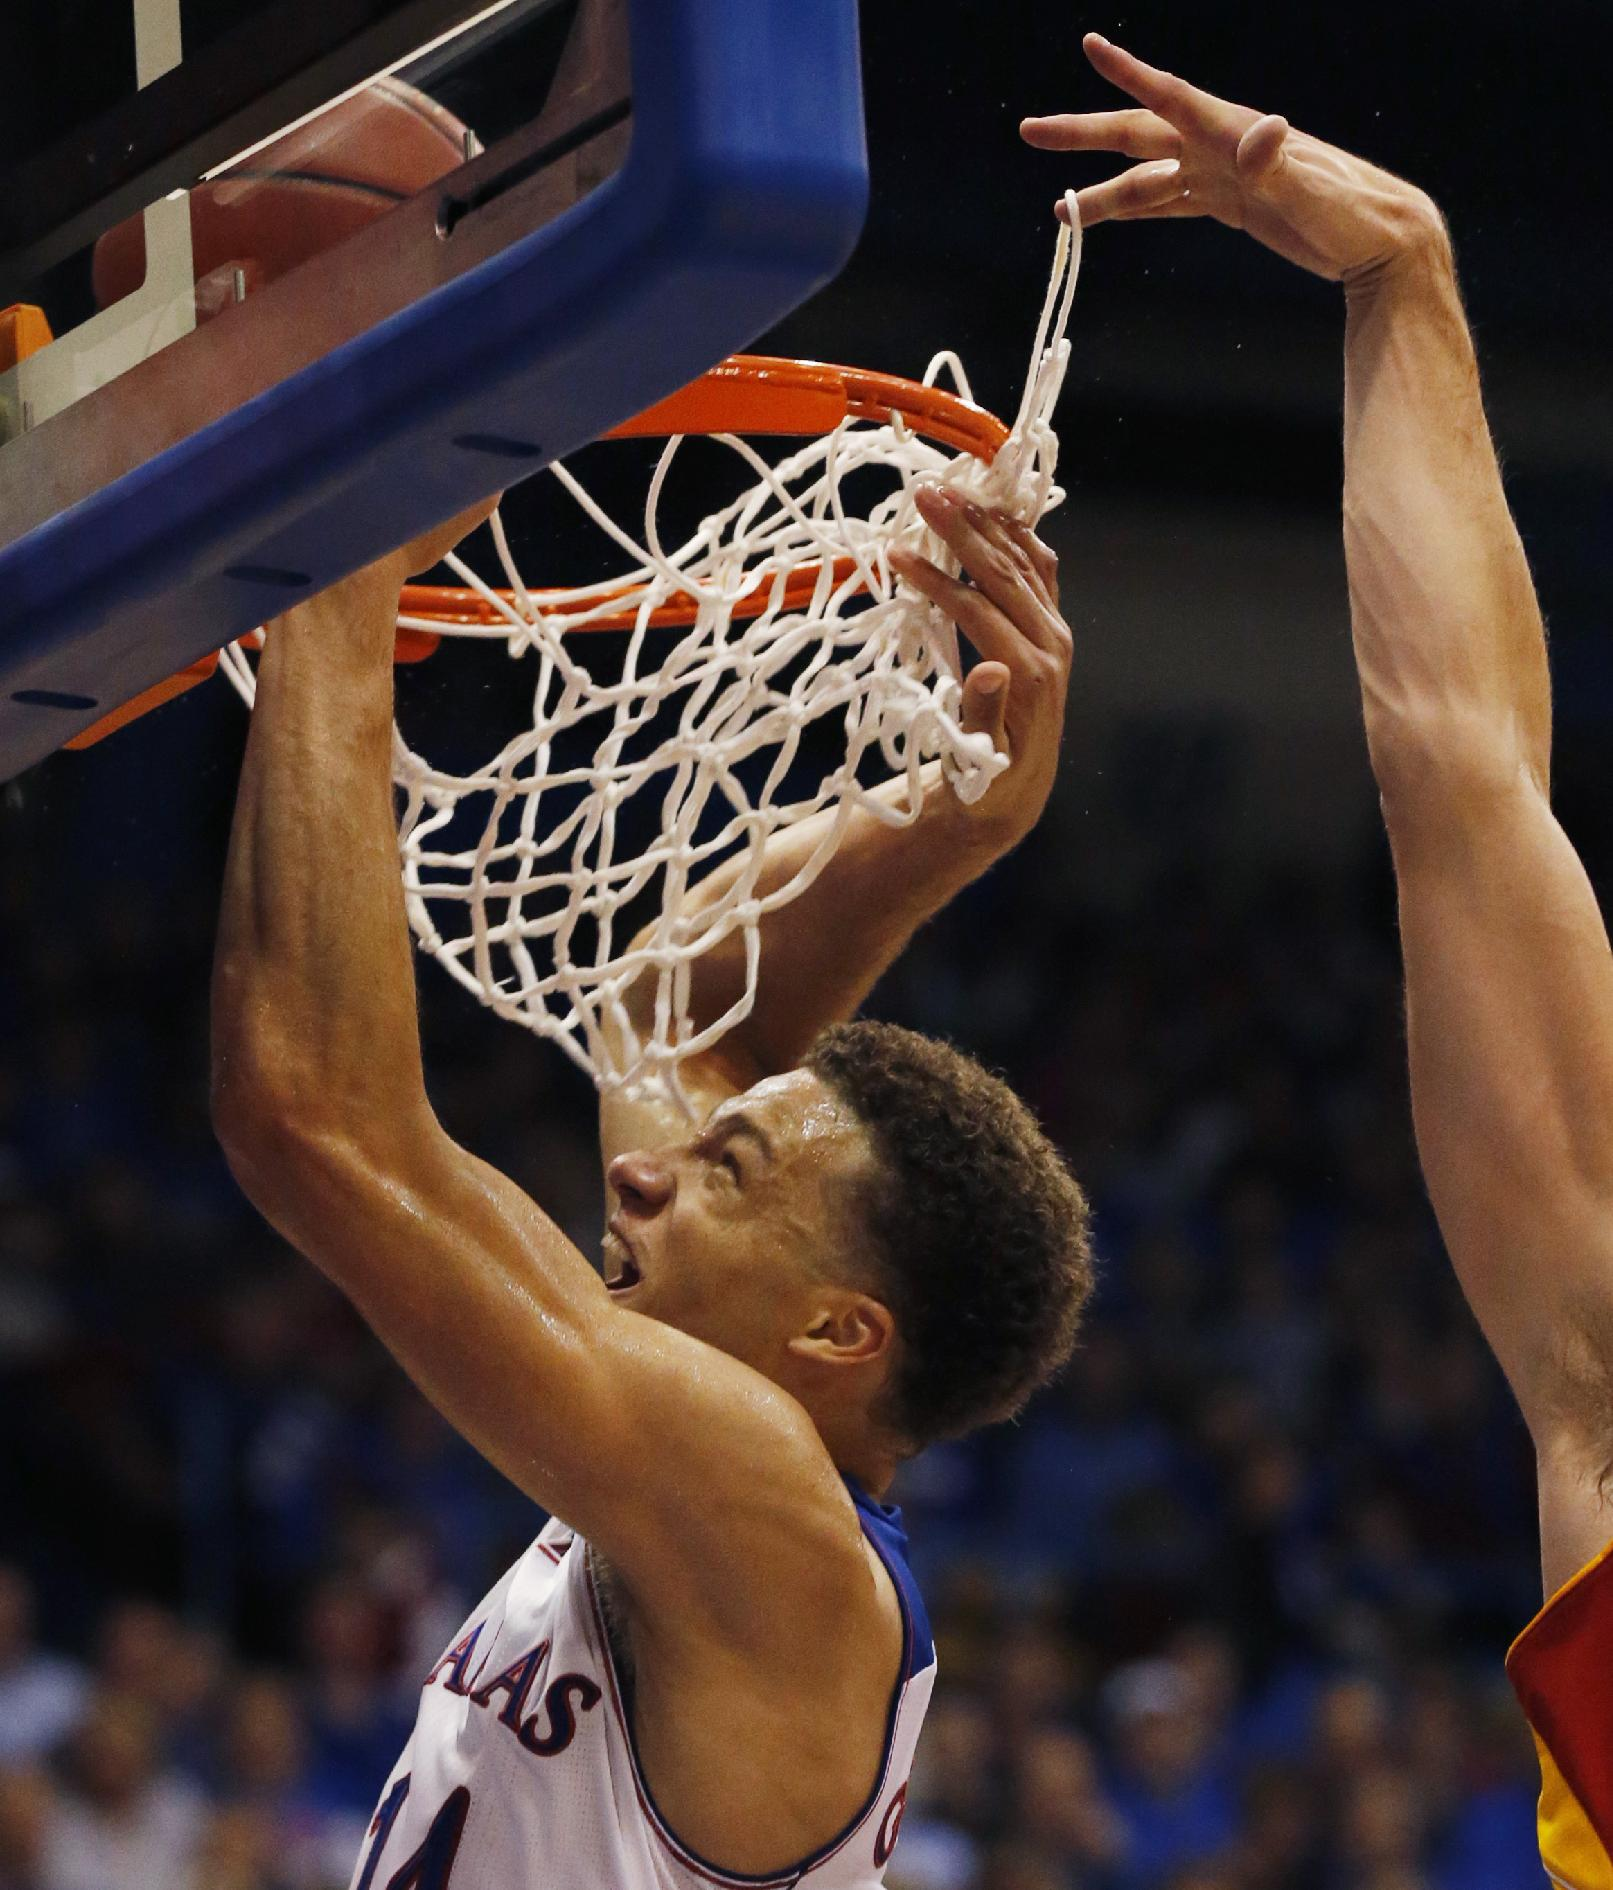 Kansas guard Brannen Greene (14) makes a basket while Pittsburg State forward Cody Gafford, right, gets a finger tangled in the net during the first half of an exhibition NCAA college basketball game in Lawrence, Kan., Tuesday, Oct. 29, 2013. Greene scored 10 points as Kansas won 97-57